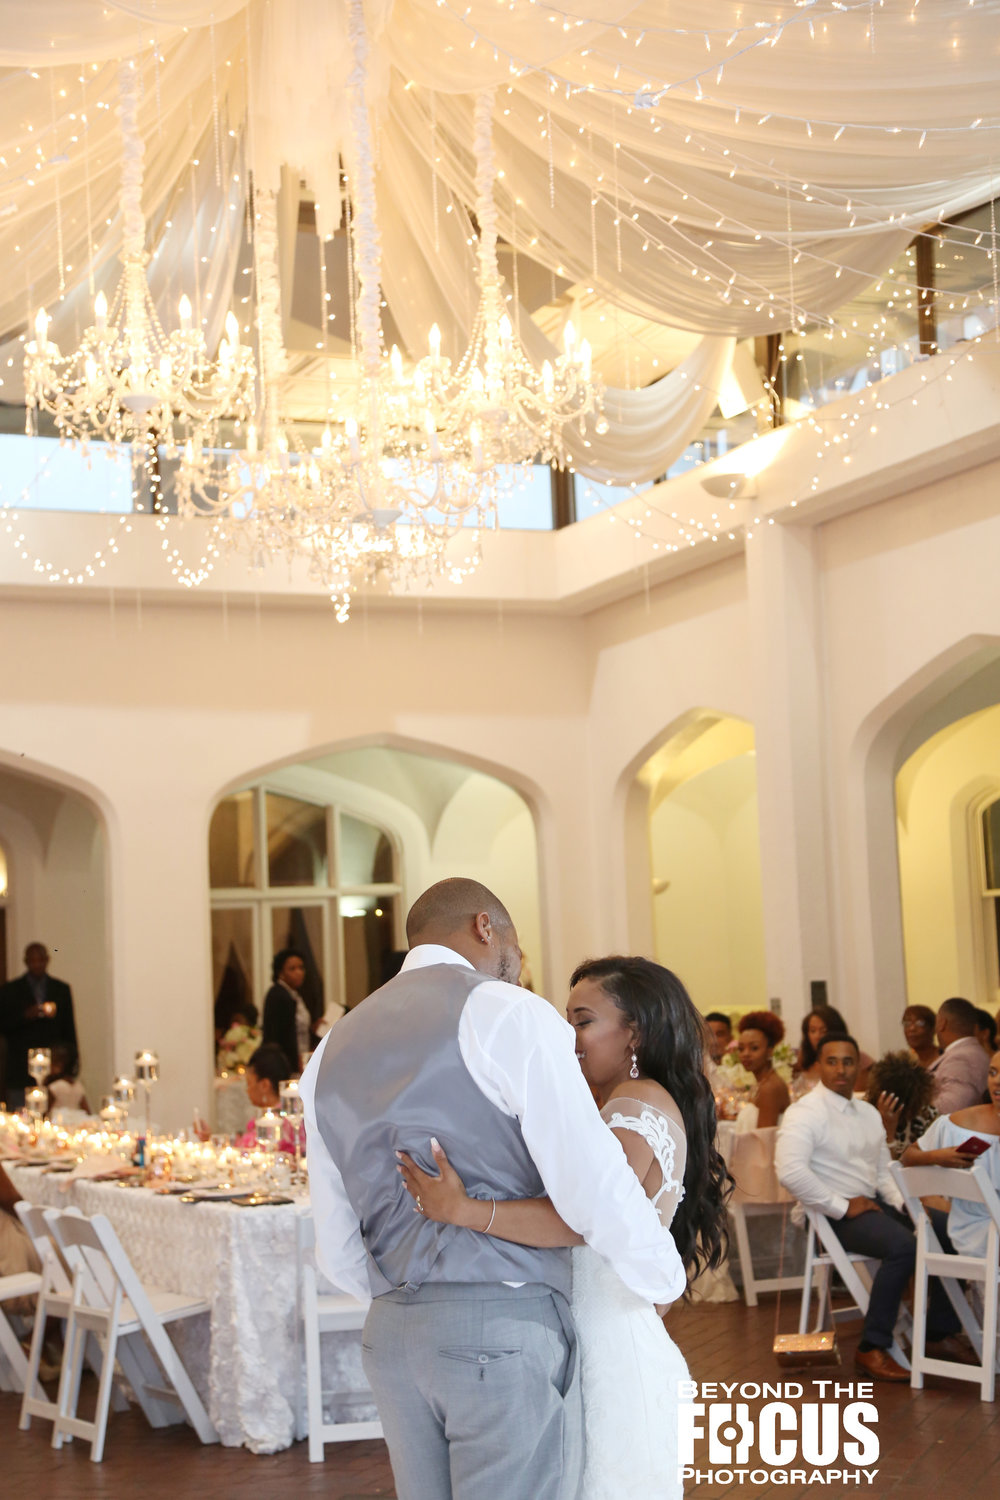 Christan_Imani_WeddingReception_W_108.jpg